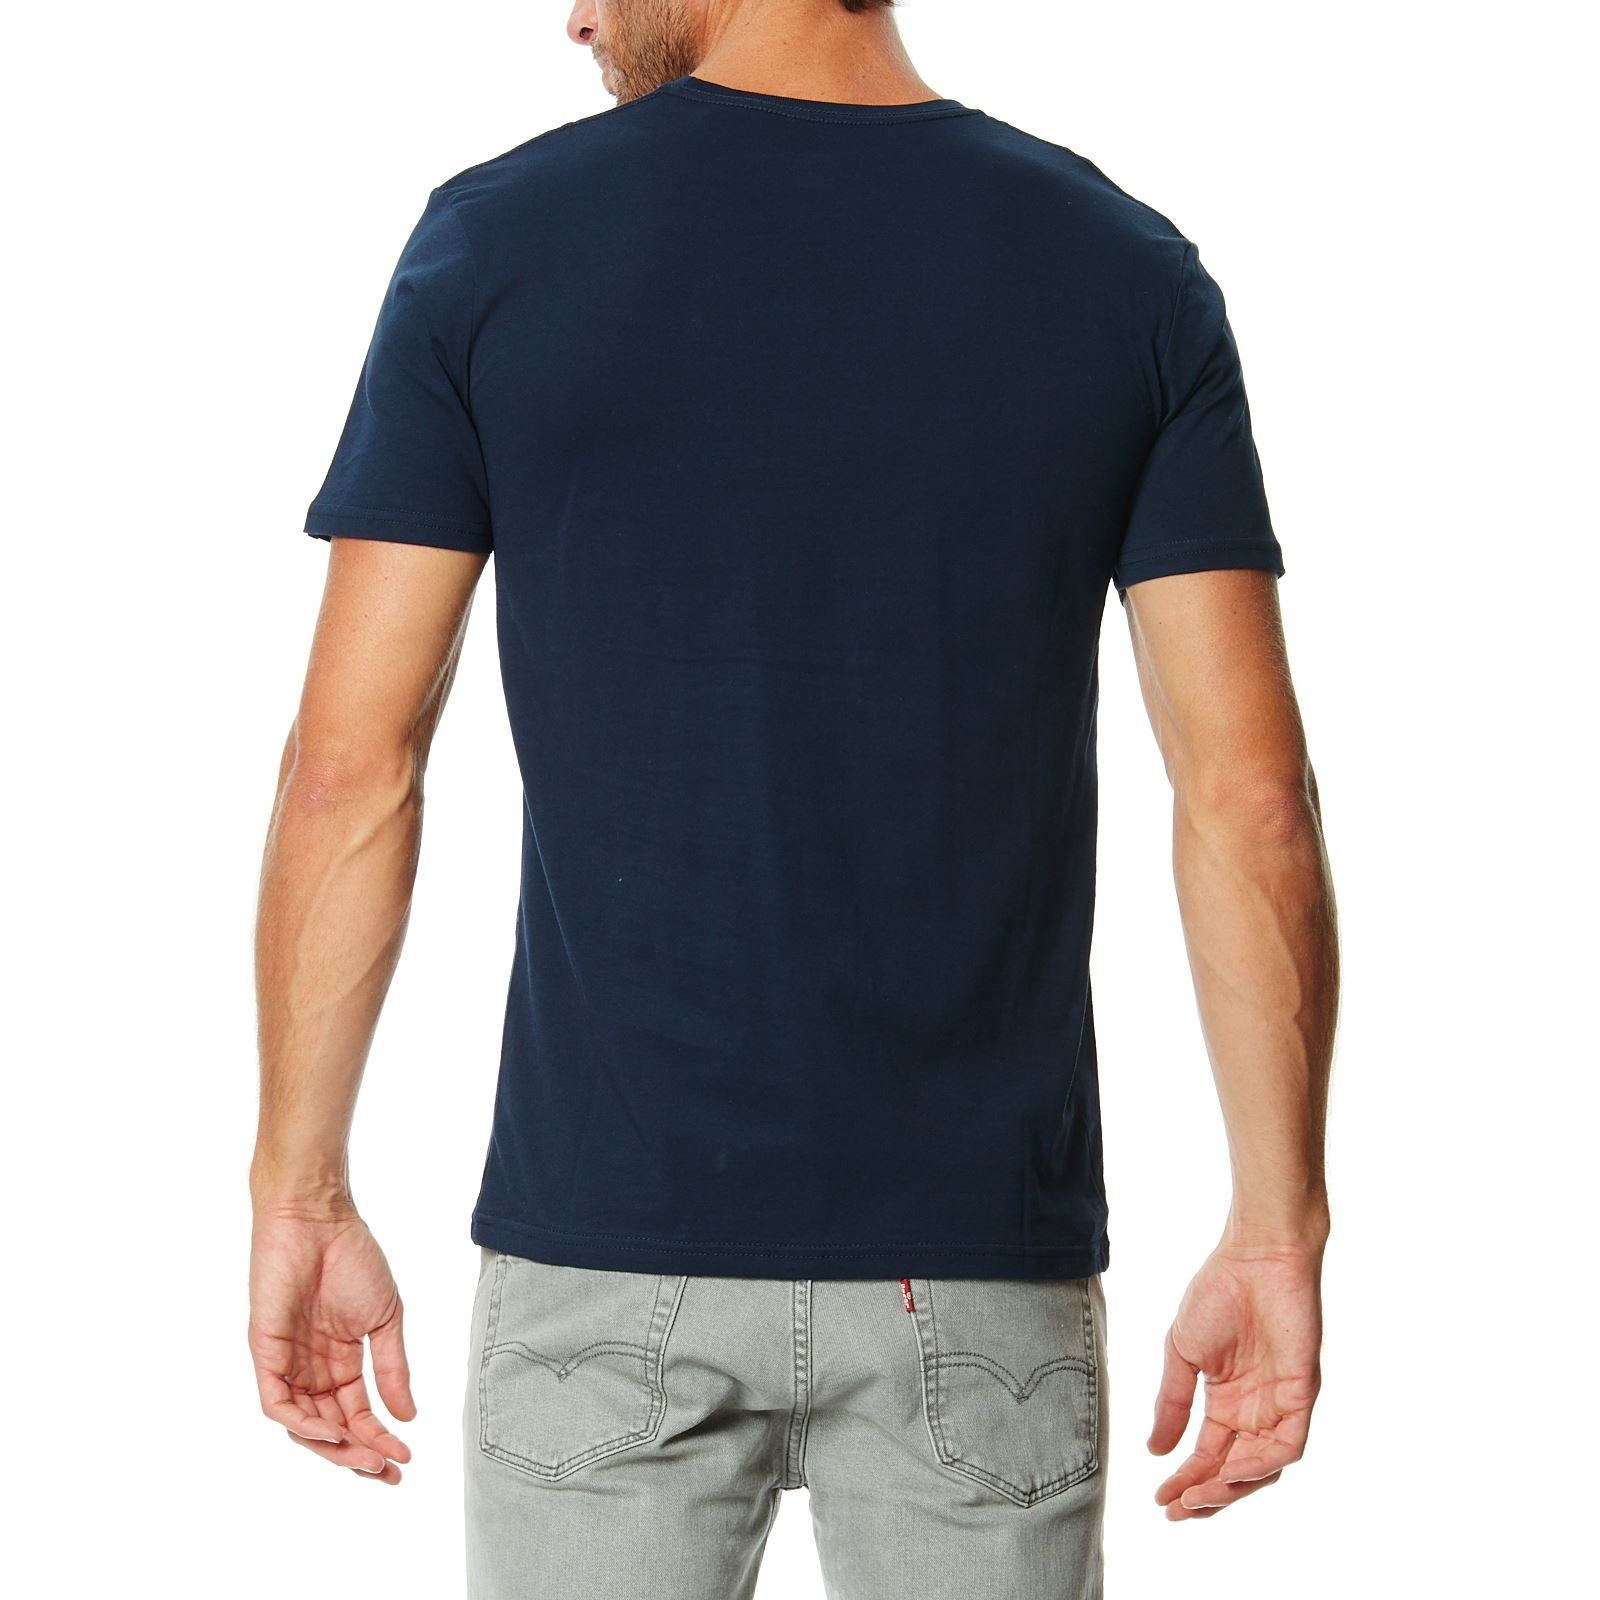 quiksilver t shirt bleu marine brandalley. Black Bedroom Furniture Sets. Home Design Ideas